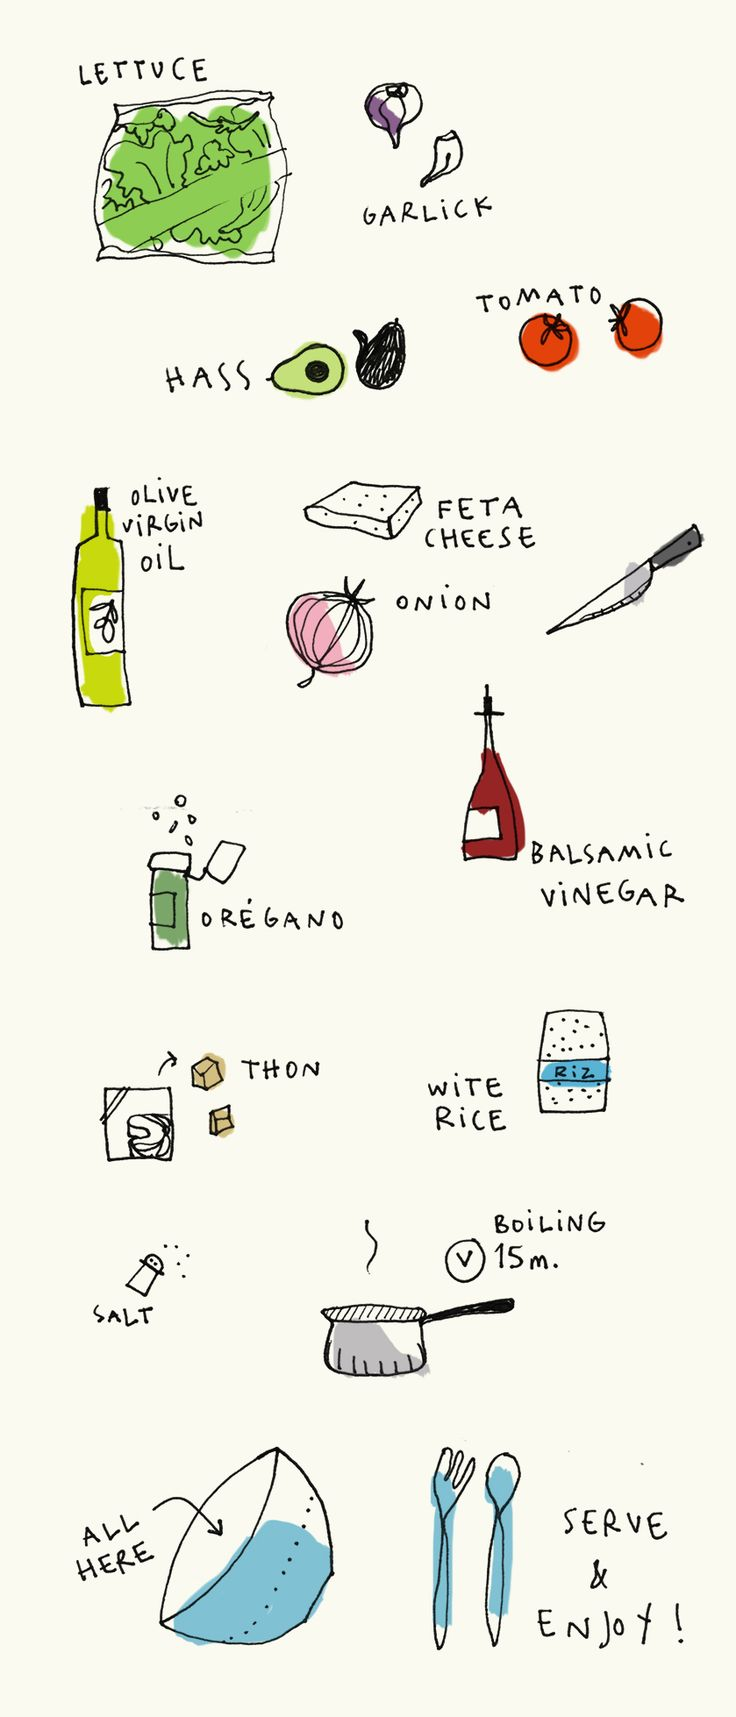 indie salad mercedes leon illustration recipe